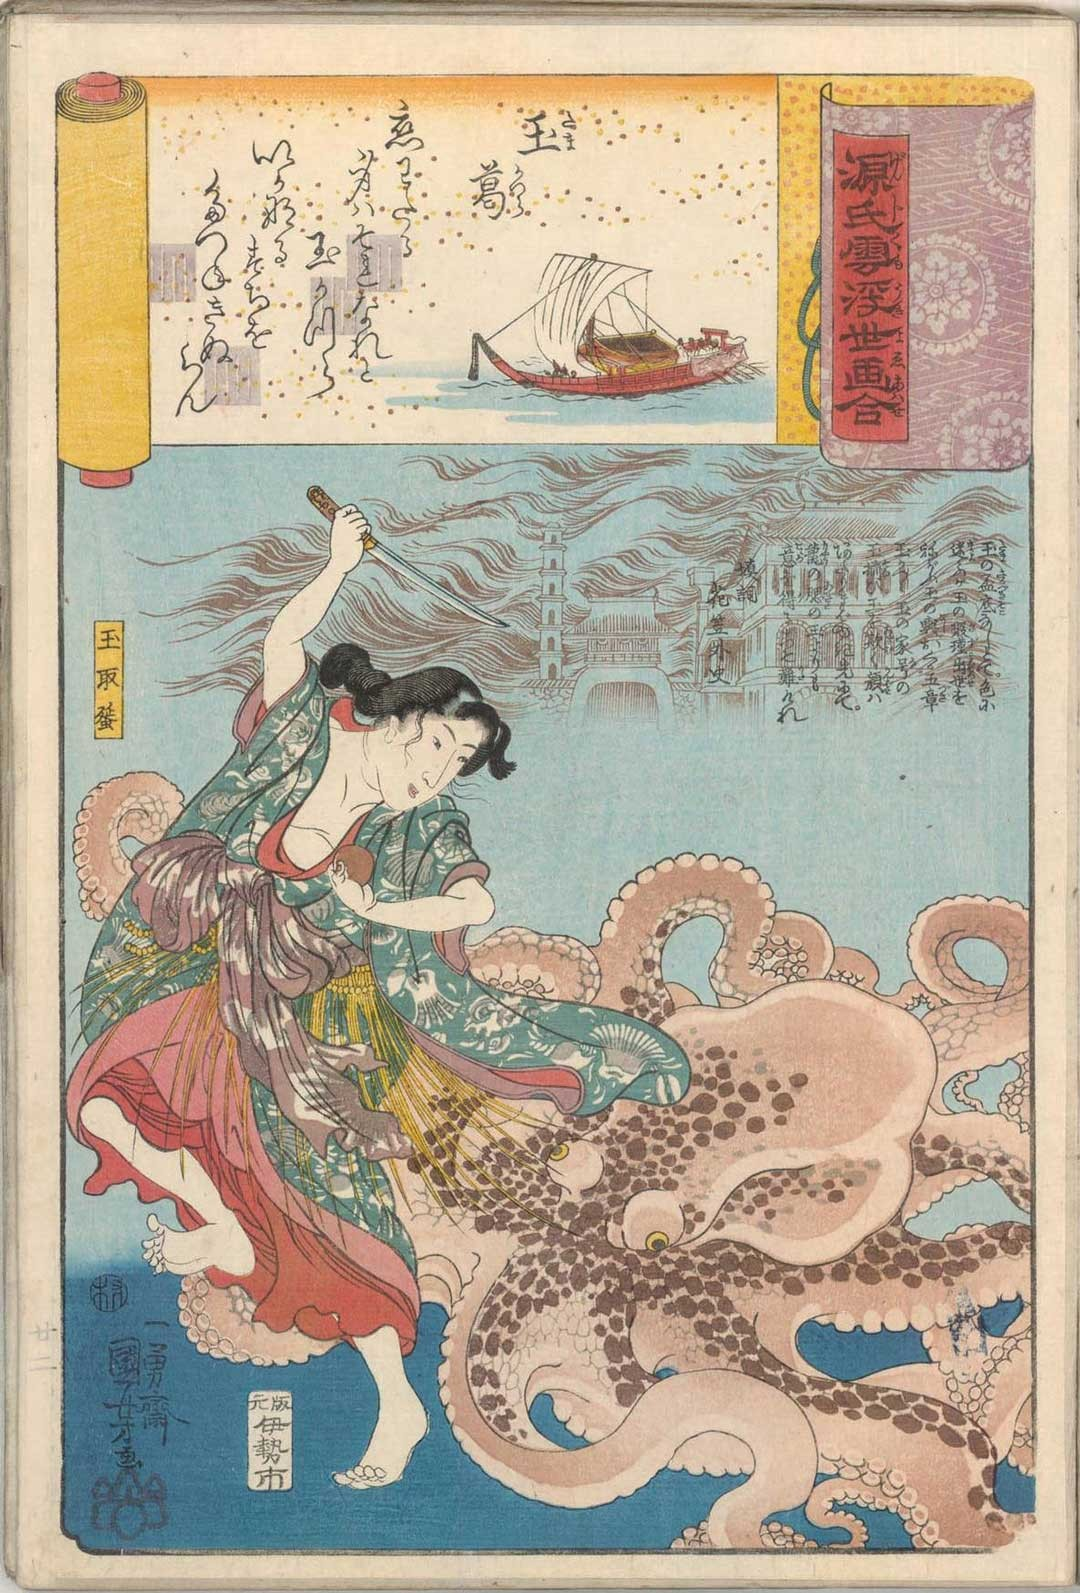 "<BODY>Utagawa Kuniyoshi, ""Tamakazura, the Diver Brings Back the Pearls"" from the series Comparison of Scenes from the Tale of Genji and the Floating World, 1843–1847<br />© MAK/Georg Mayer</BODY>"